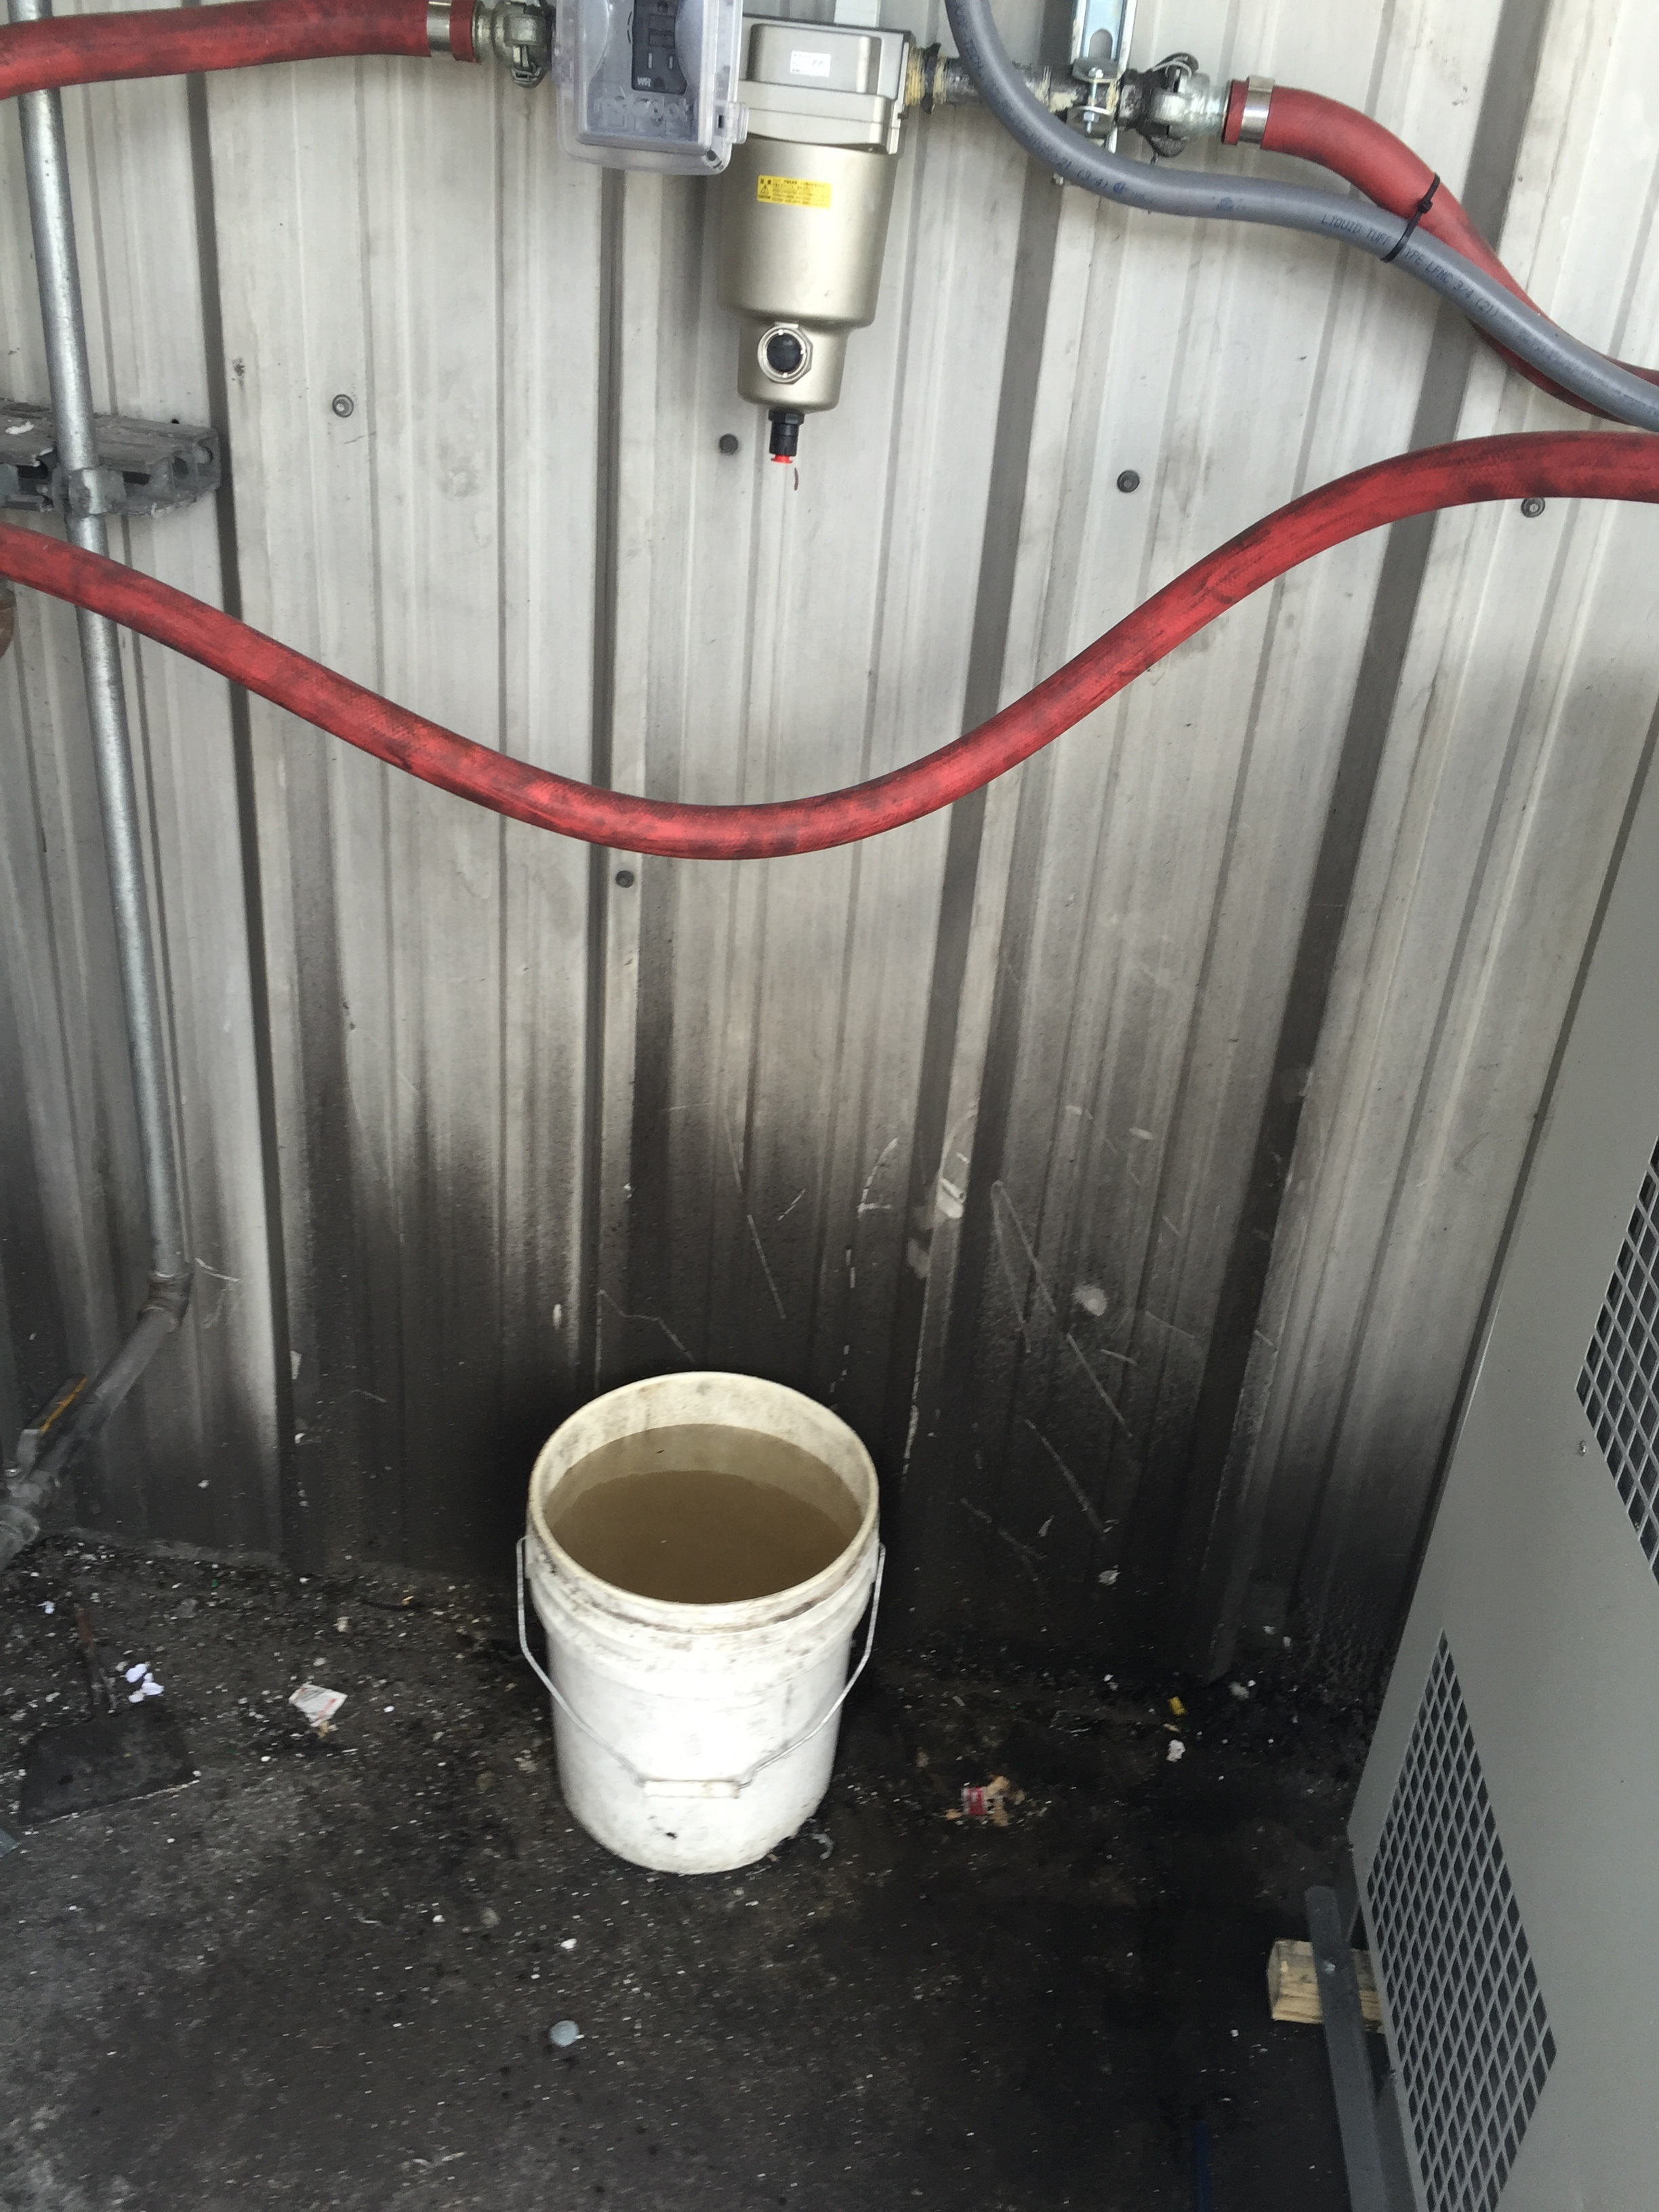 This SMC air dryer solution extracted nearly five gallons of moisture and oil from the facilities pneumatic system. The same moisture and oil that previously was passed through to the machine tool.